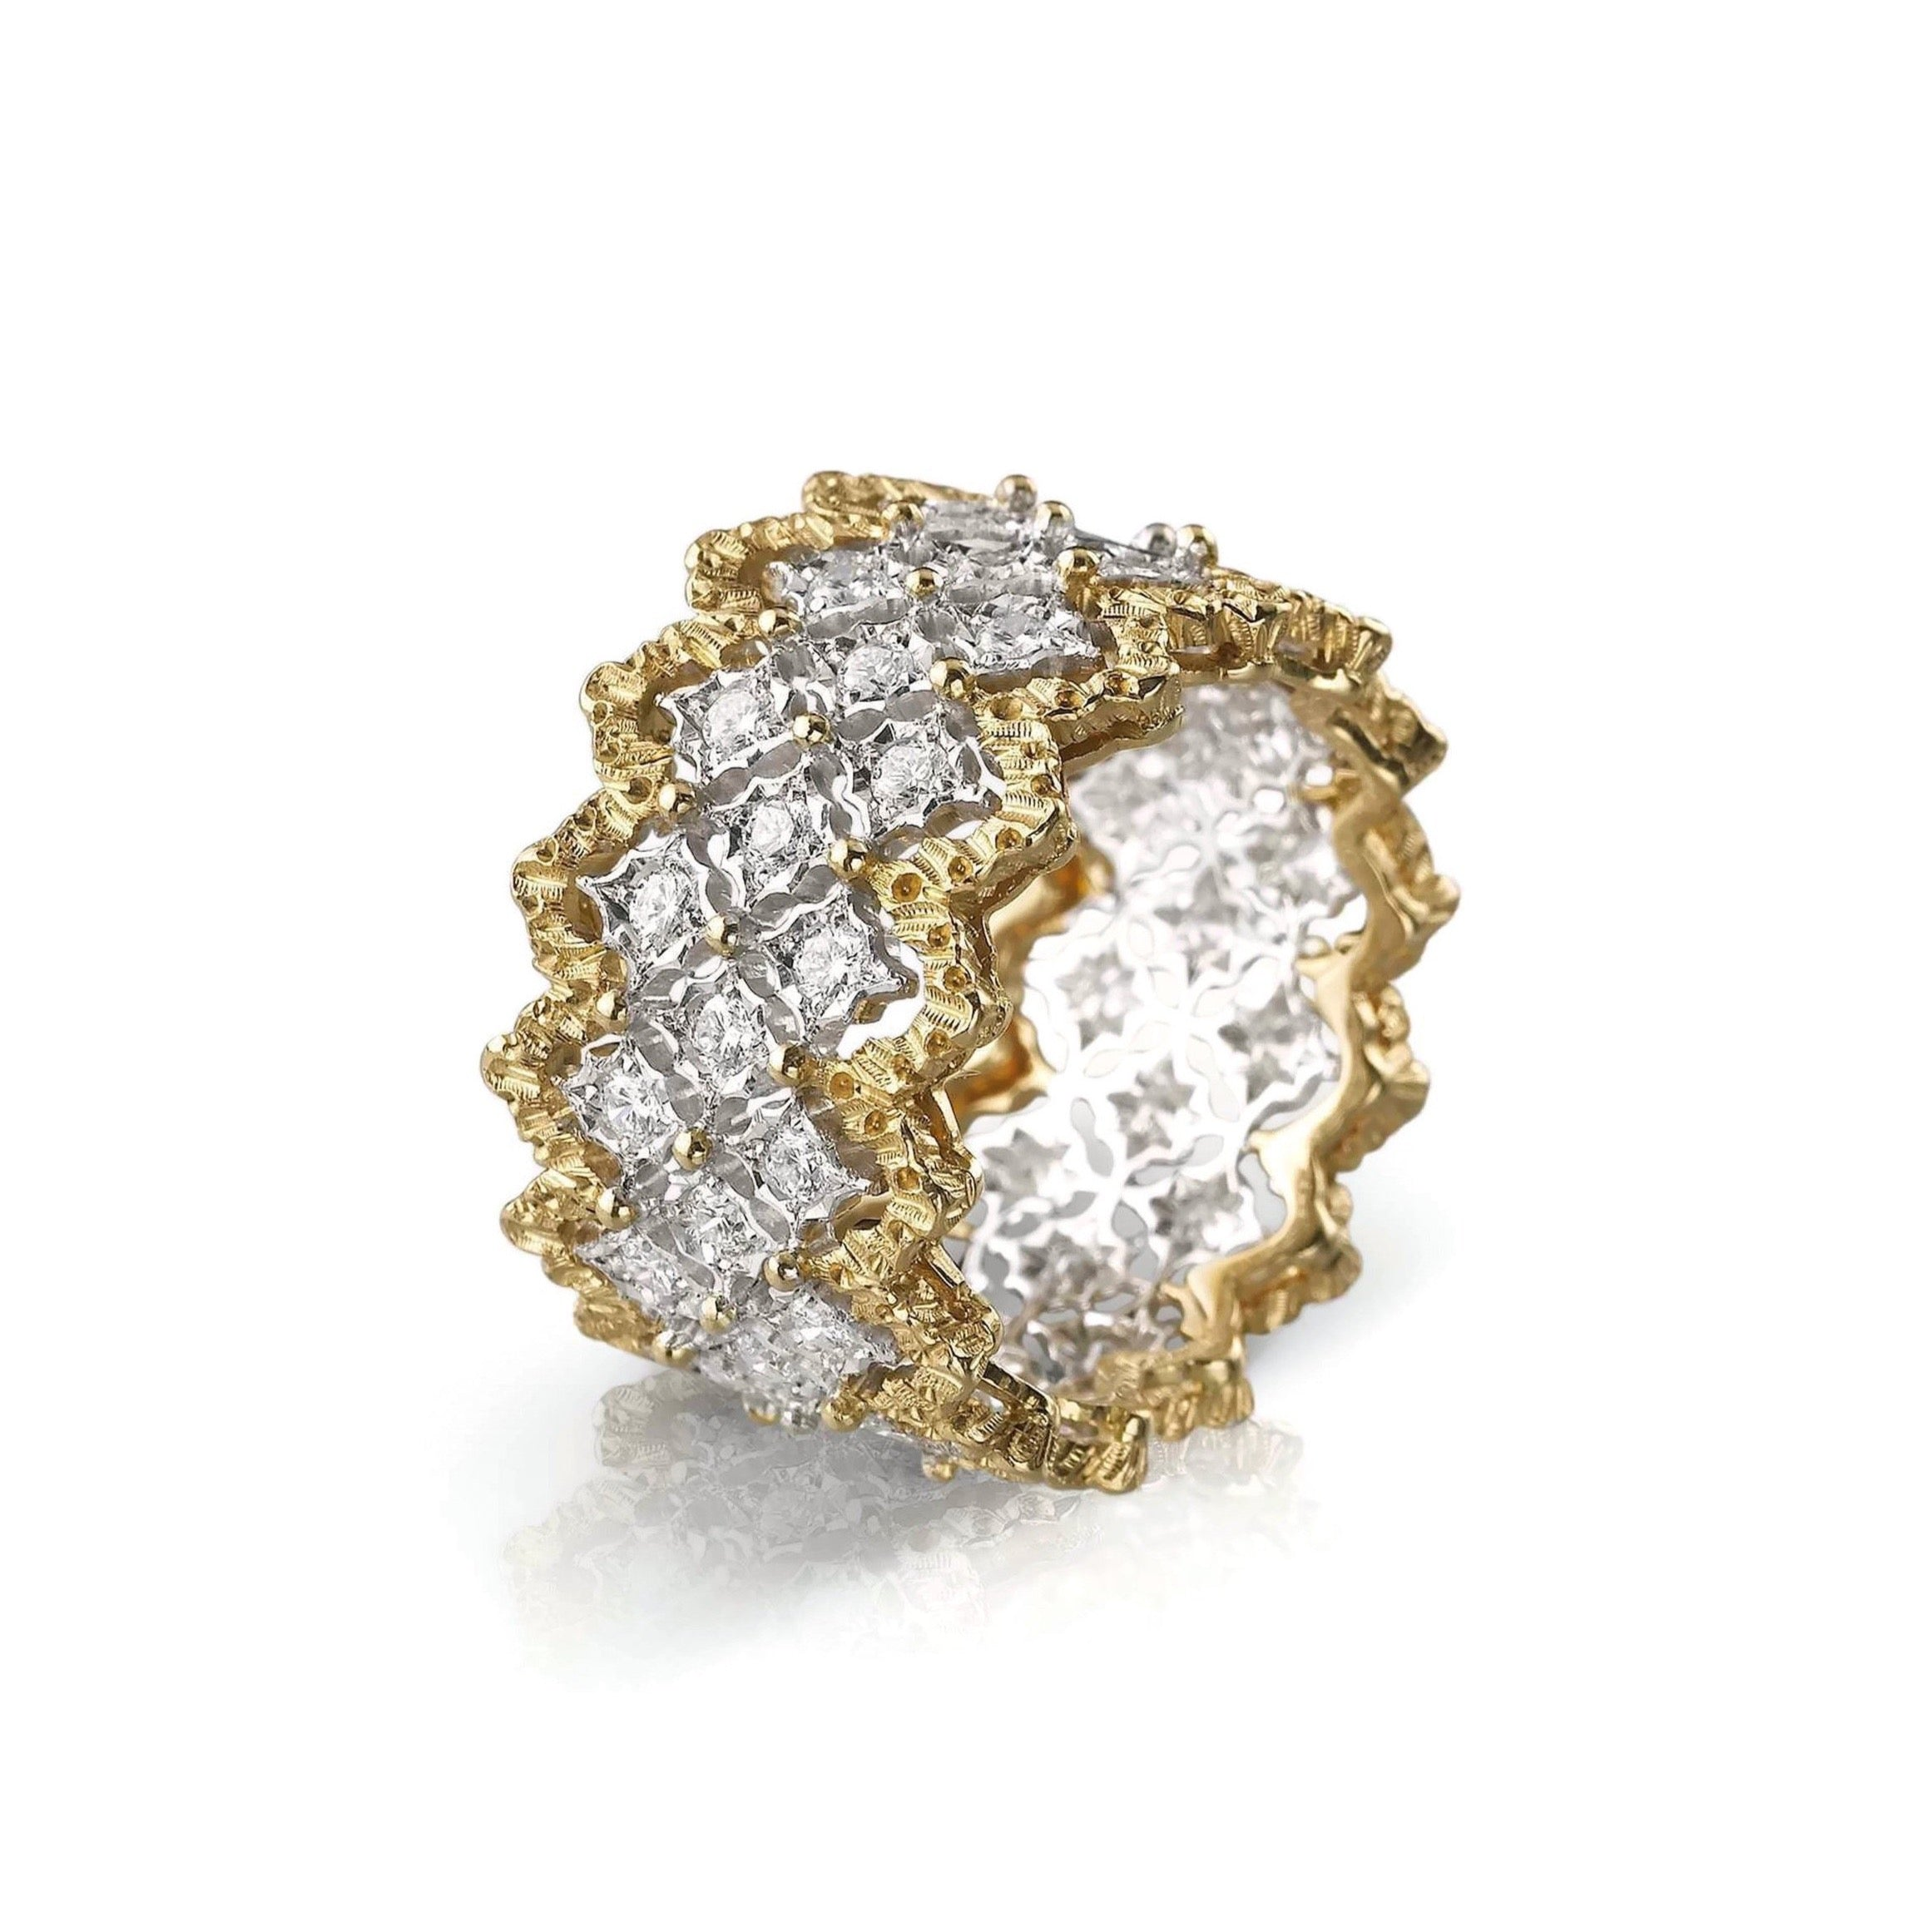 ring bands two mdoern products gold and pave band diamond